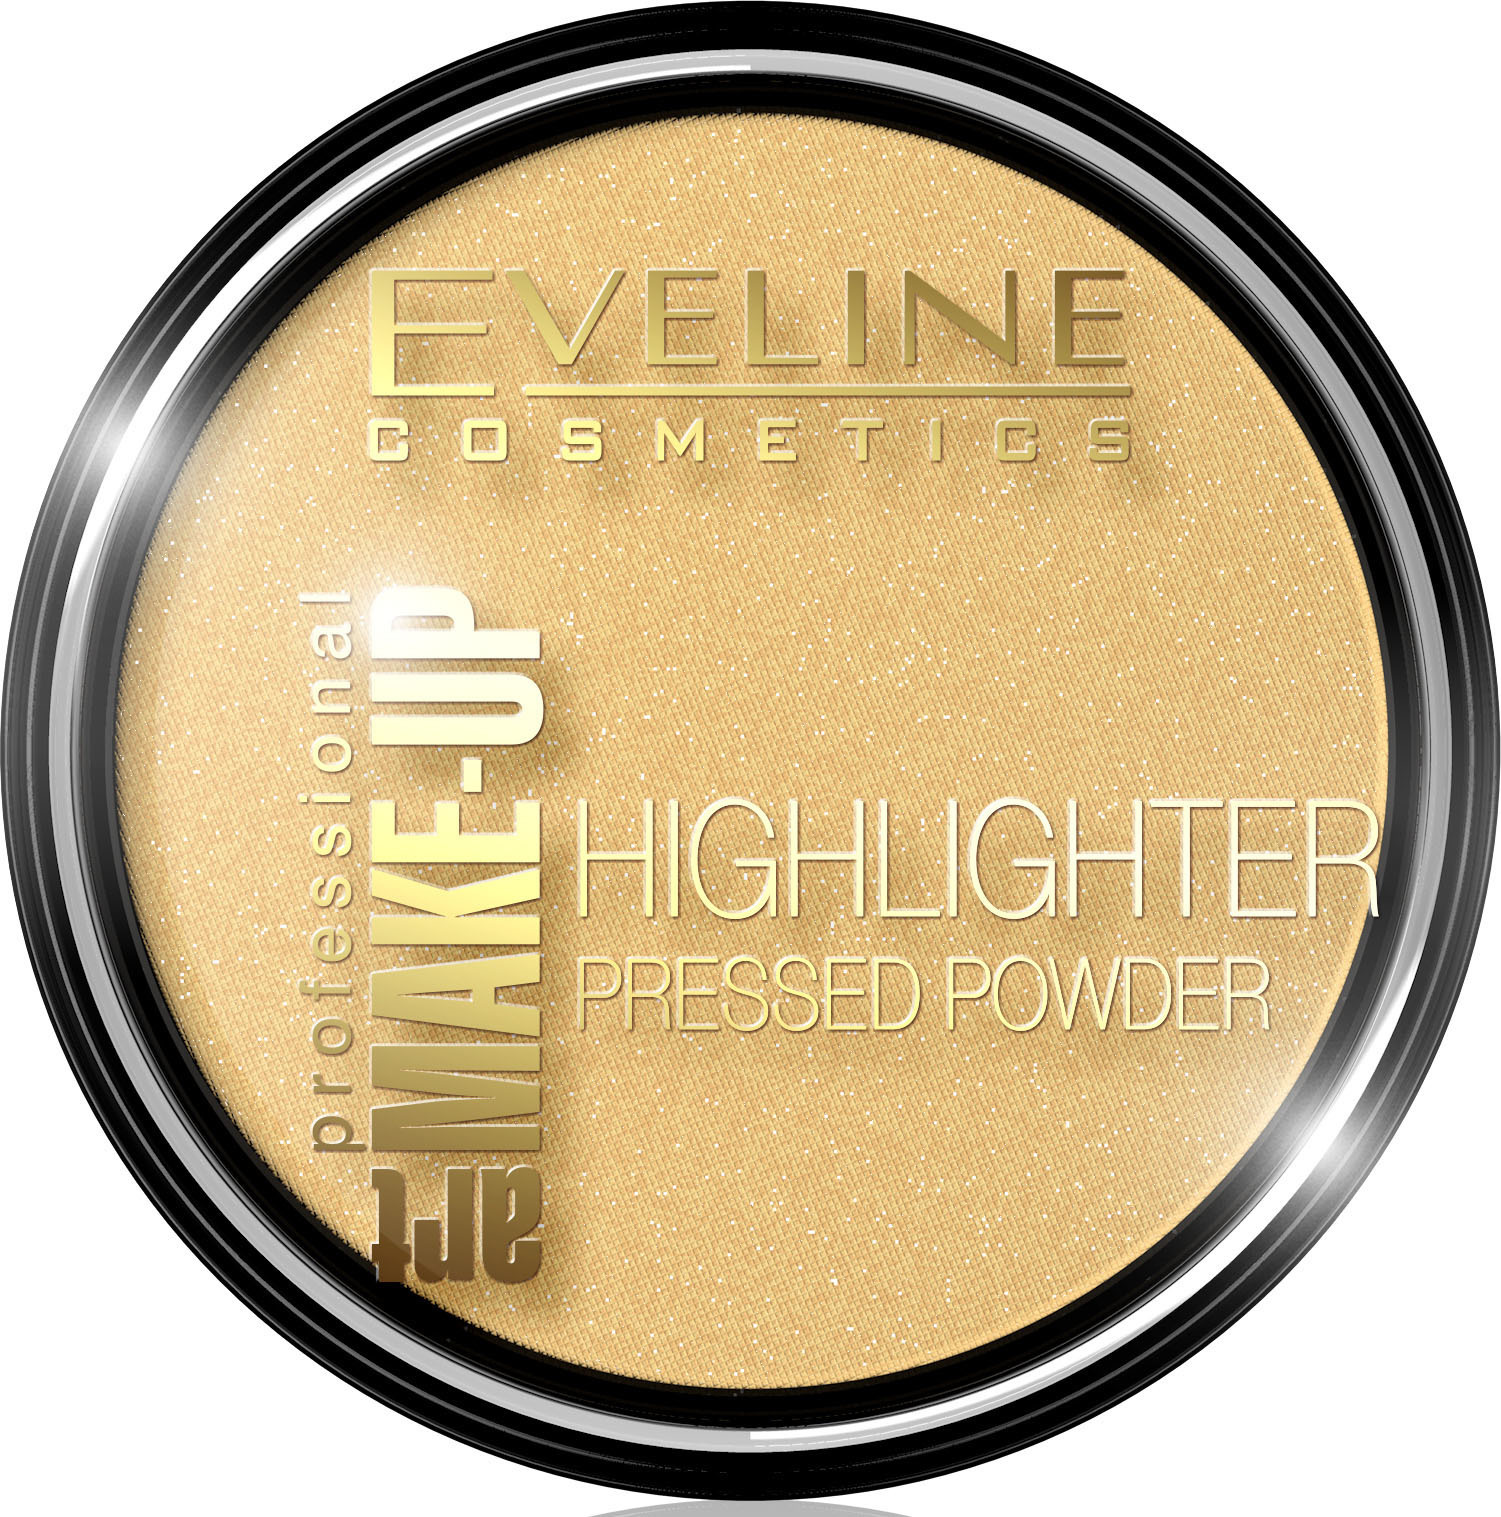 ART MAKE-UP PROFESSIONAL HIGHLIGHTER РАССВЕТЛЯЮЩАЯ ПУДРА ДЛЯ ЛИЦА И ТЕЛА - 55 GOLDEN